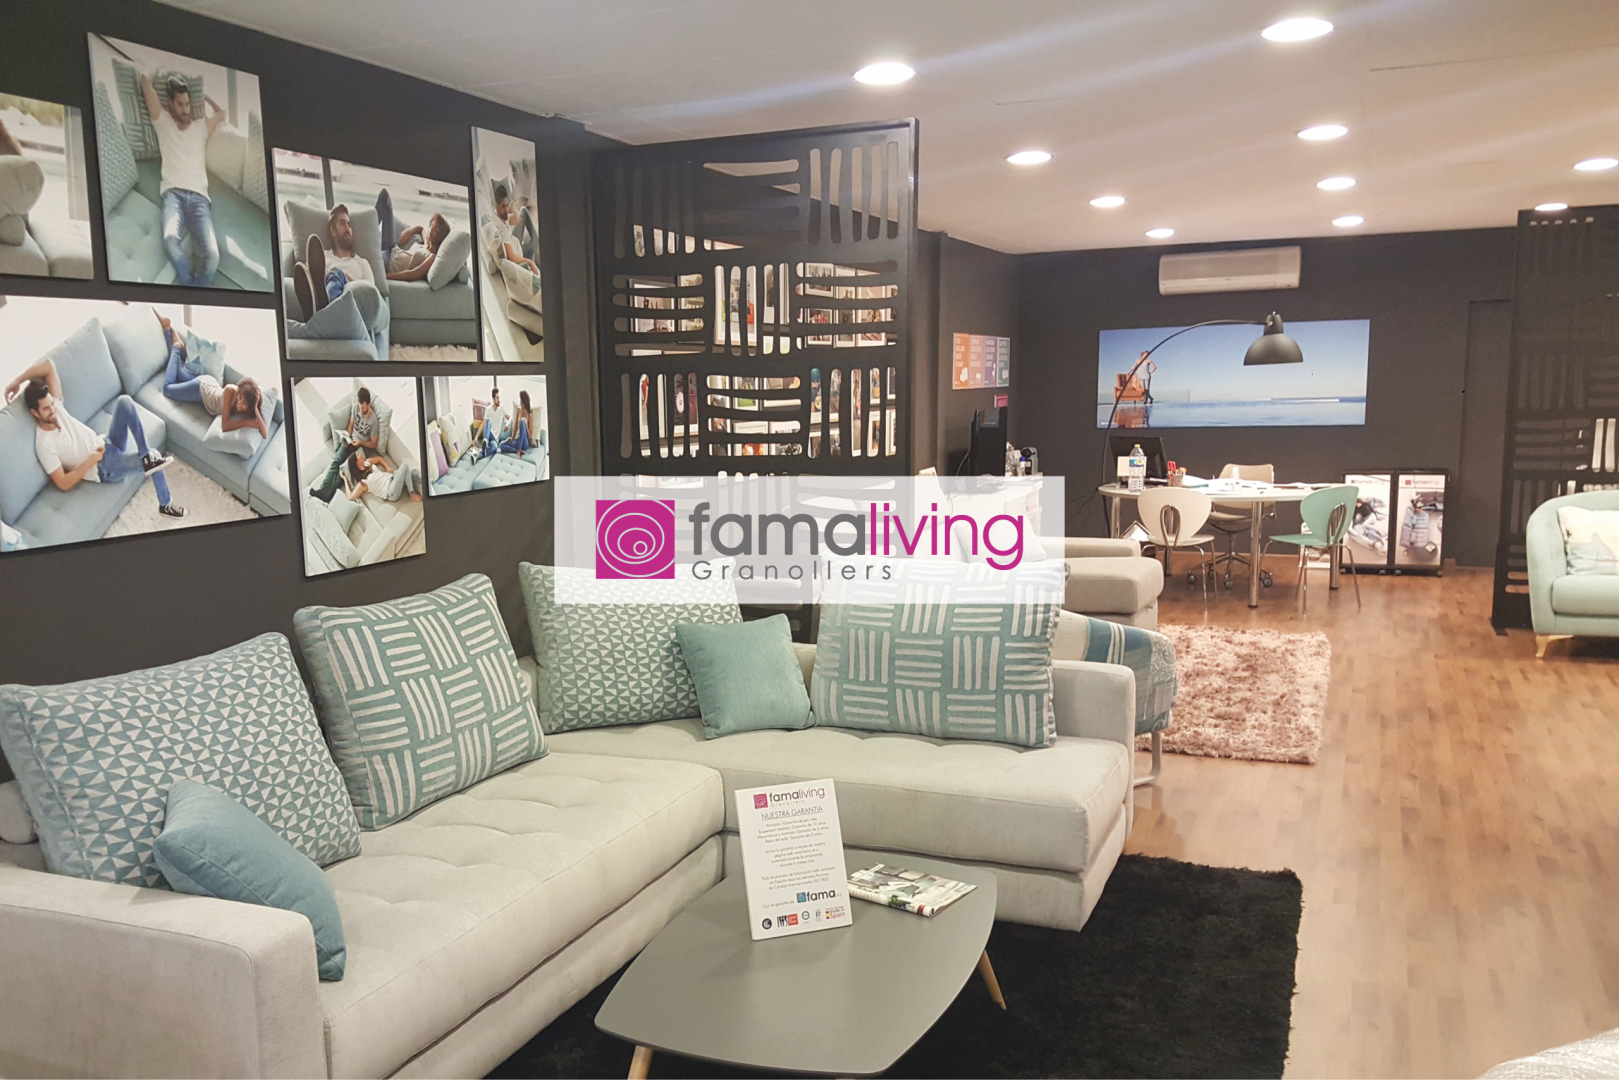 Famaliving Granollers - Sofa Store<br /><br />